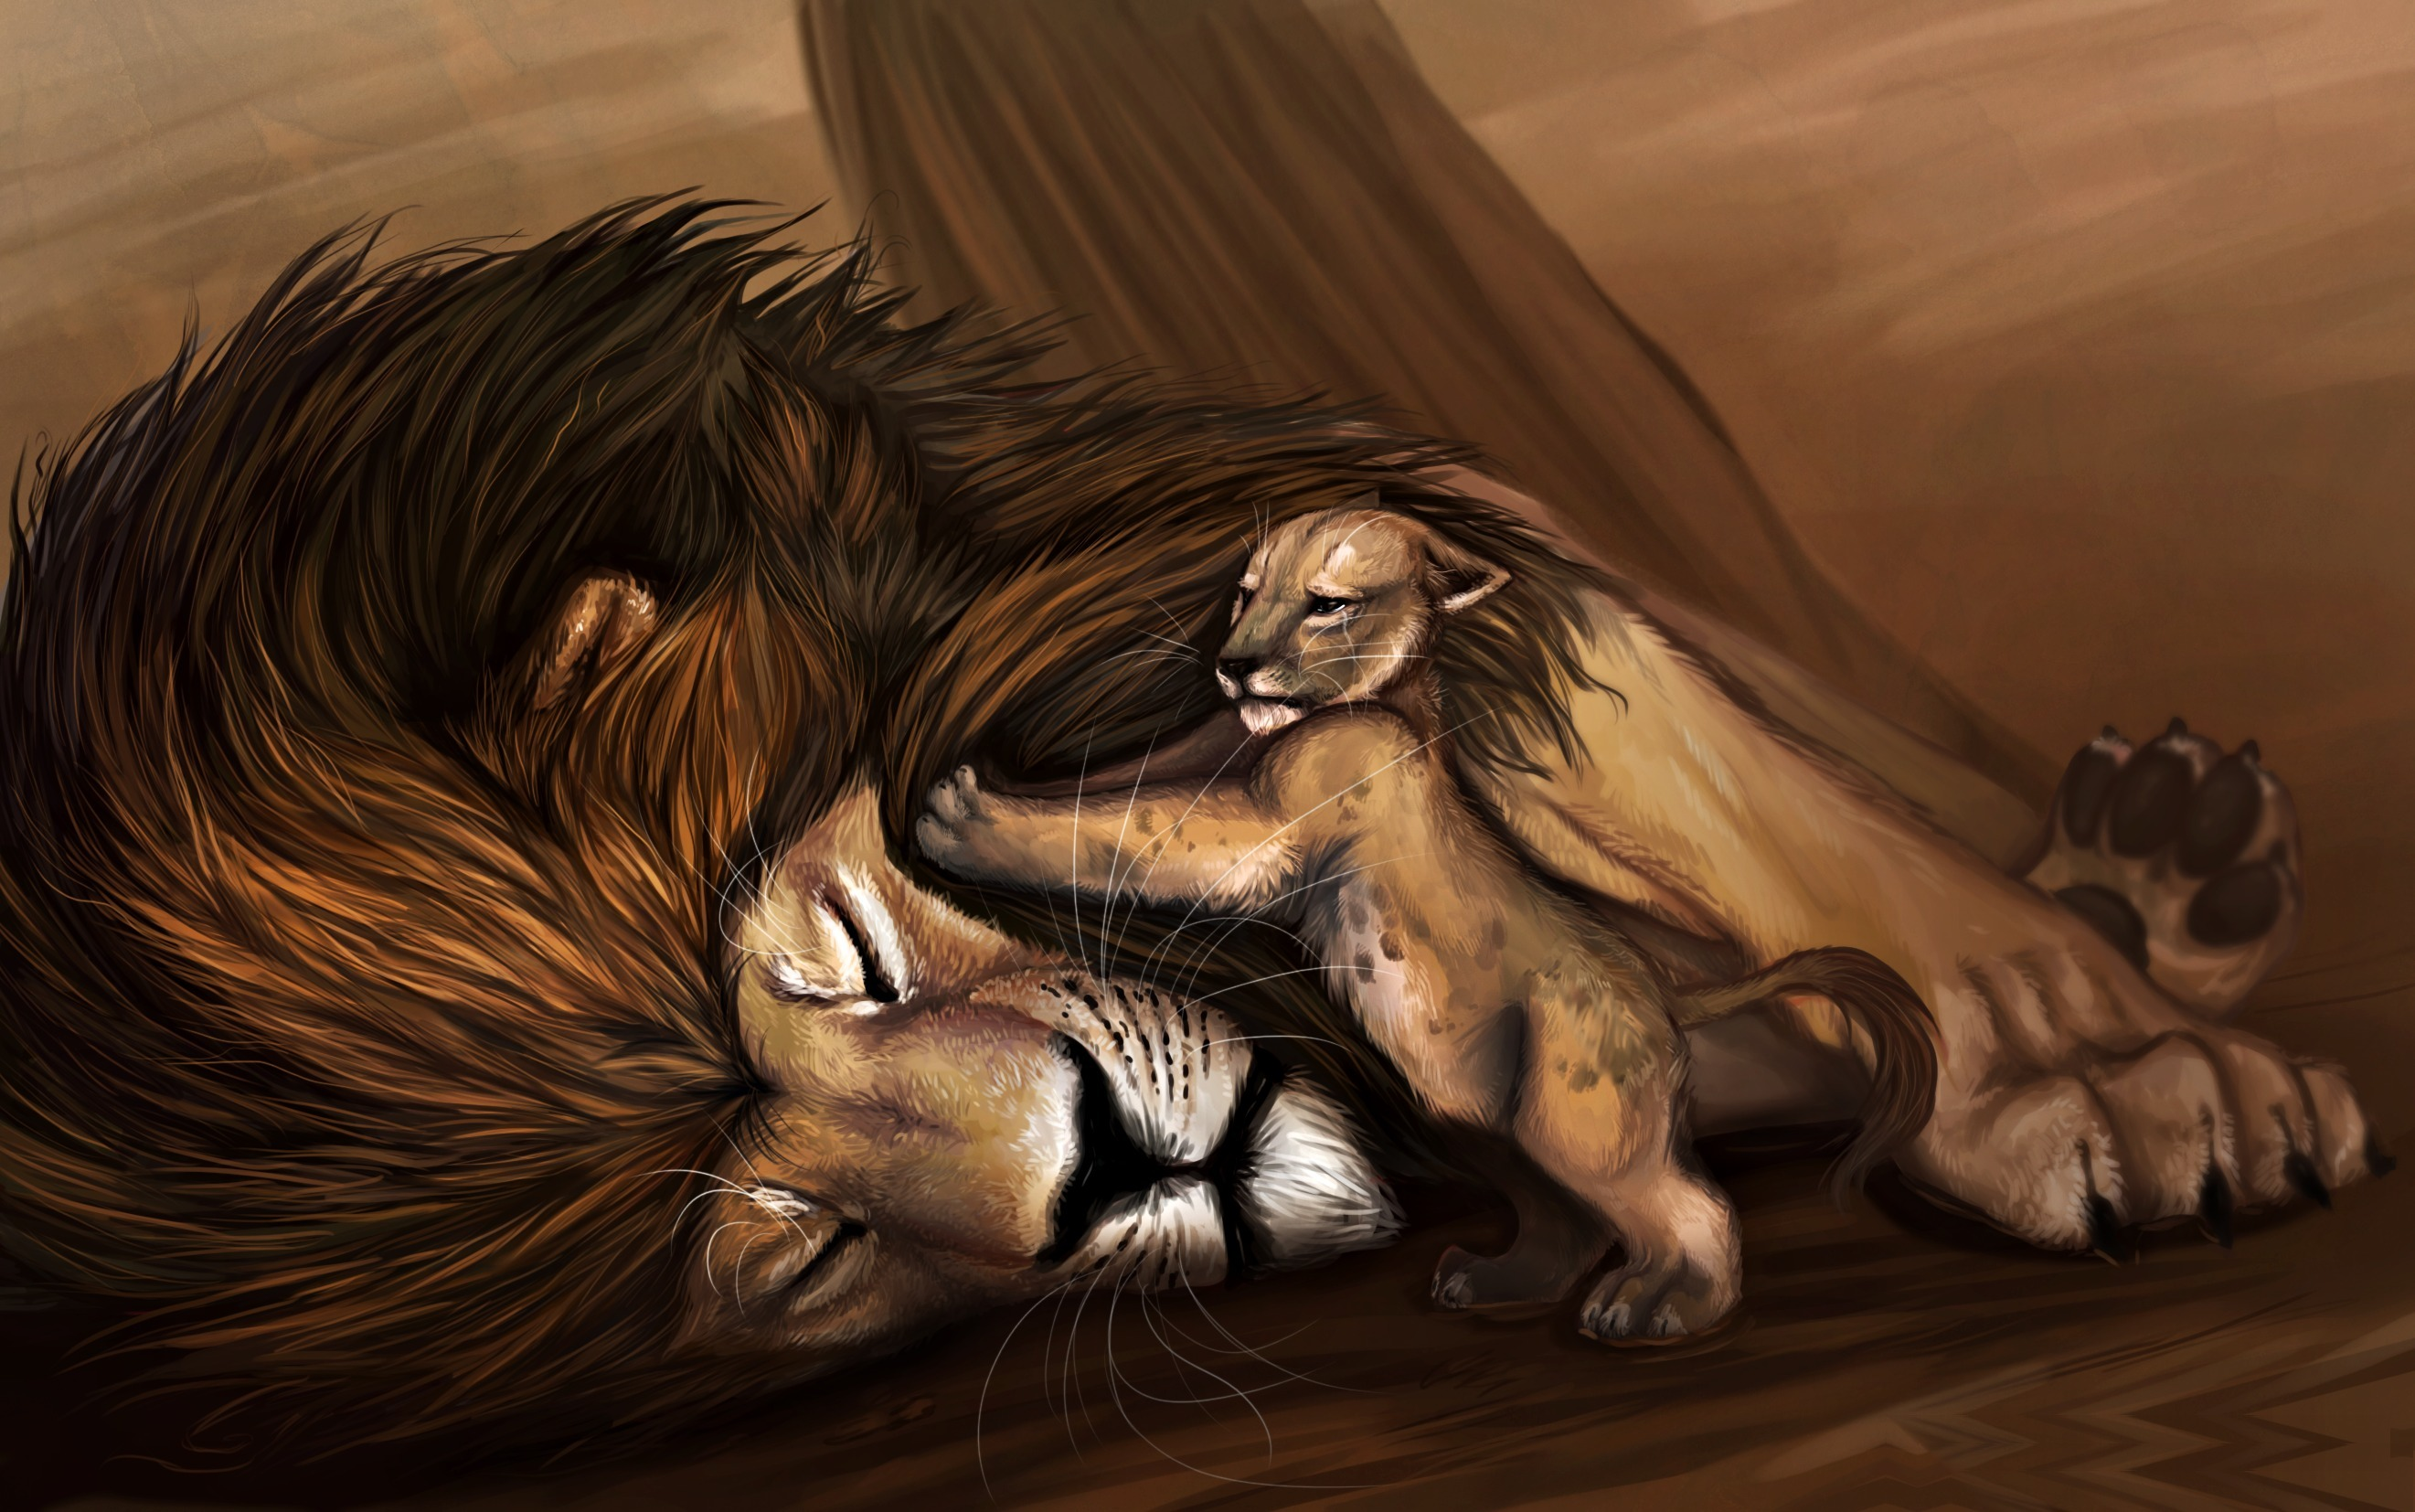 The Lion King Wallpapers, Pictures, Images